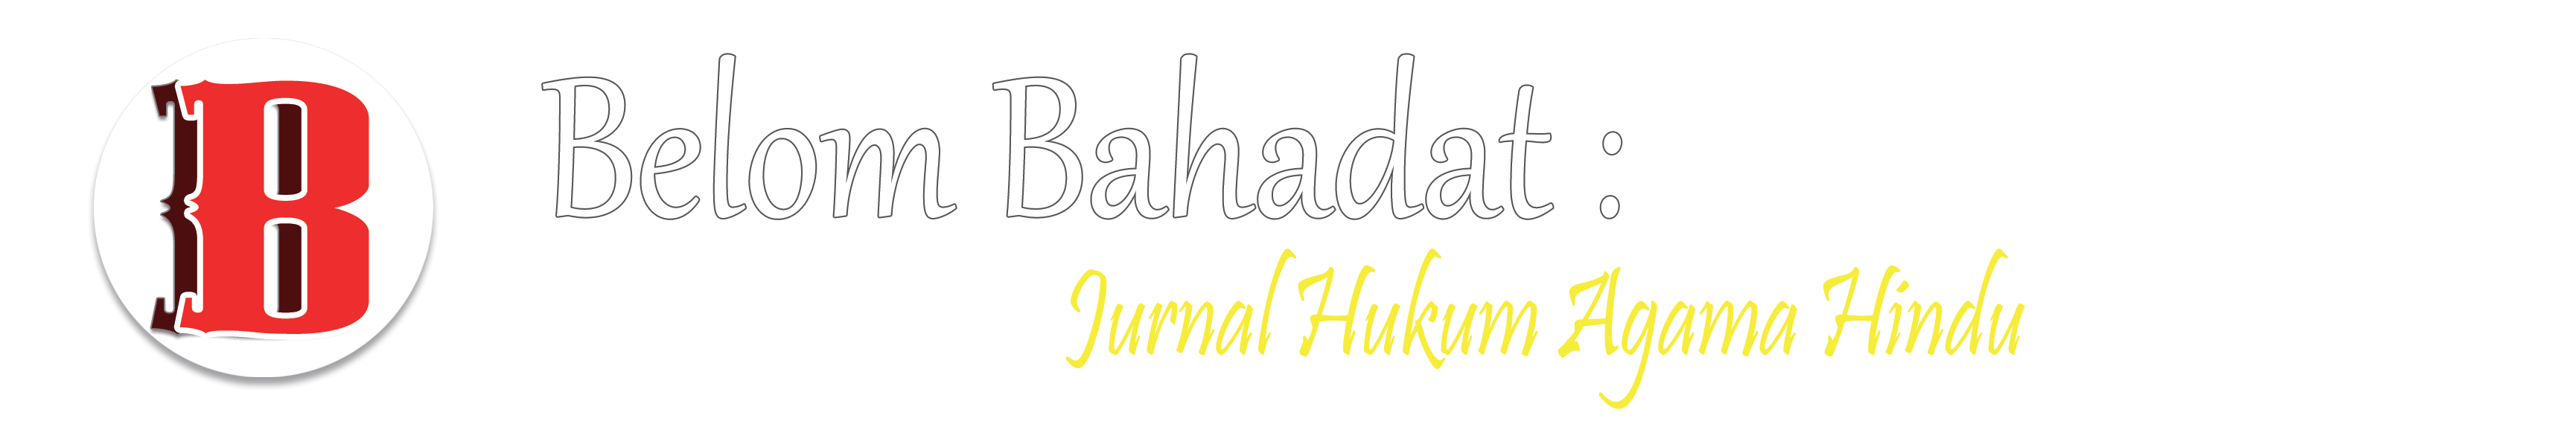 Header Logo Images Jurnal Belom Bahadat